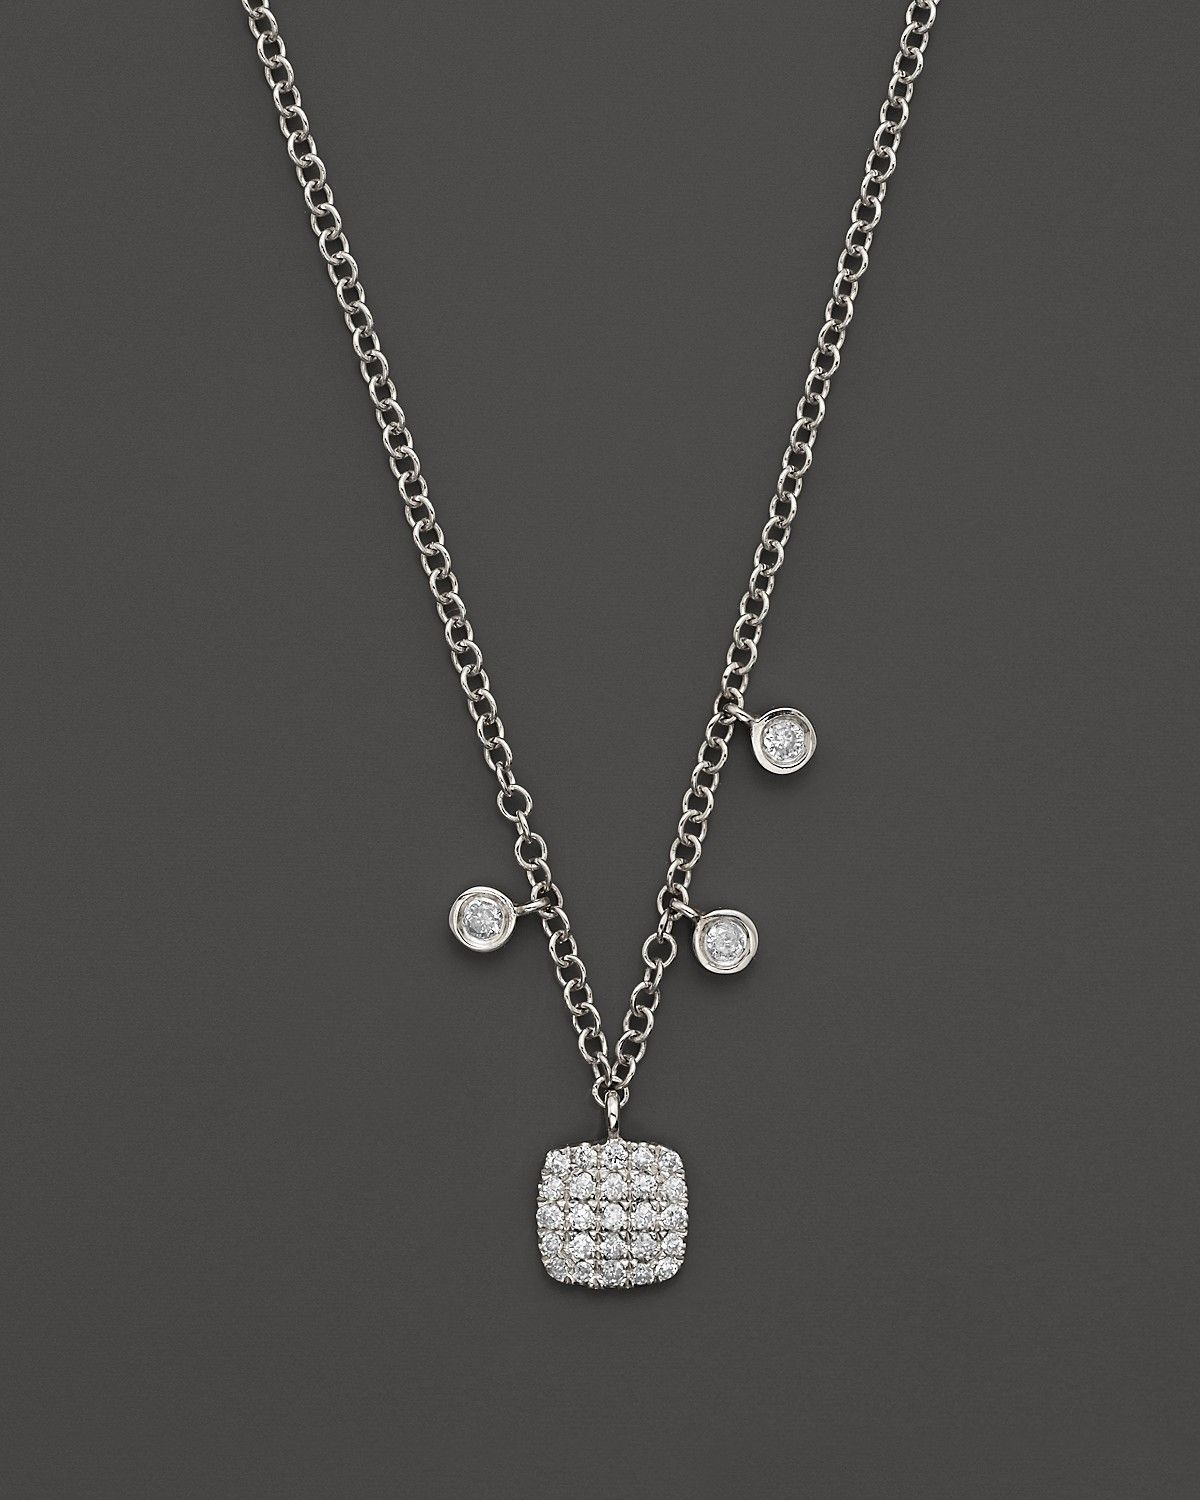 ee61f70dd6fed 14K White Gold Square Pavé Diamond Disc Necklace, 16 in 2019 ...